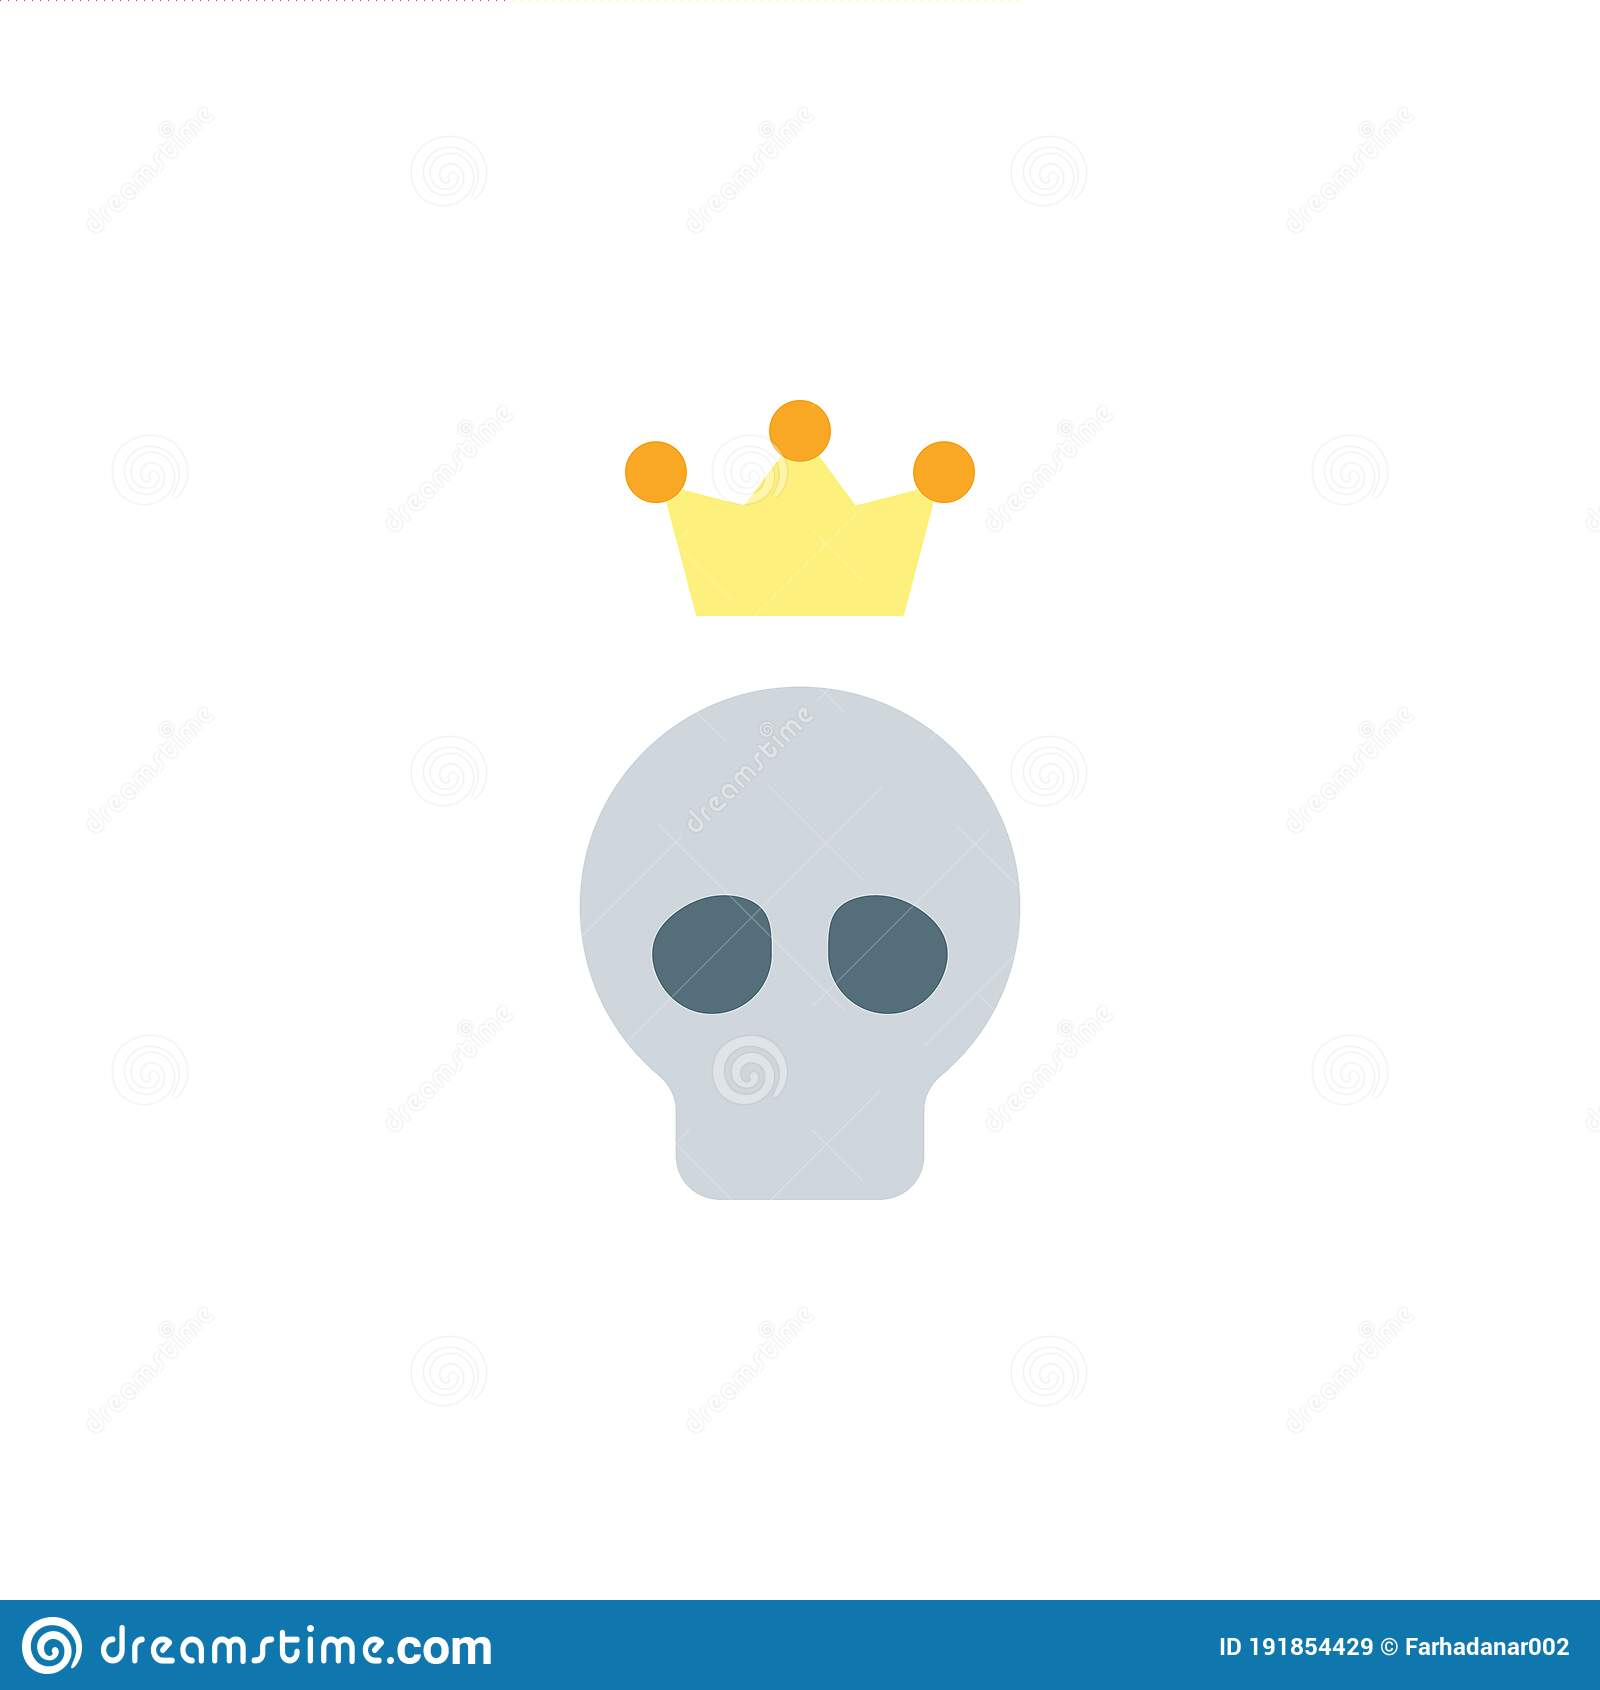 Skull Crown Tattoo Icon Simple Color Vector Elements Of Tattooing Icons For Ui And Ux Website Or Mobile Application Stock Illustration Illustration Of Graphic Line 191854429 Collection by greeshma shaji shaji • last updated 4 days ago. skull crown tattoo icon simple color vector elements of tattooing icons for ui and ux website or mobile application stock illustration illustration of graphic line 191854429